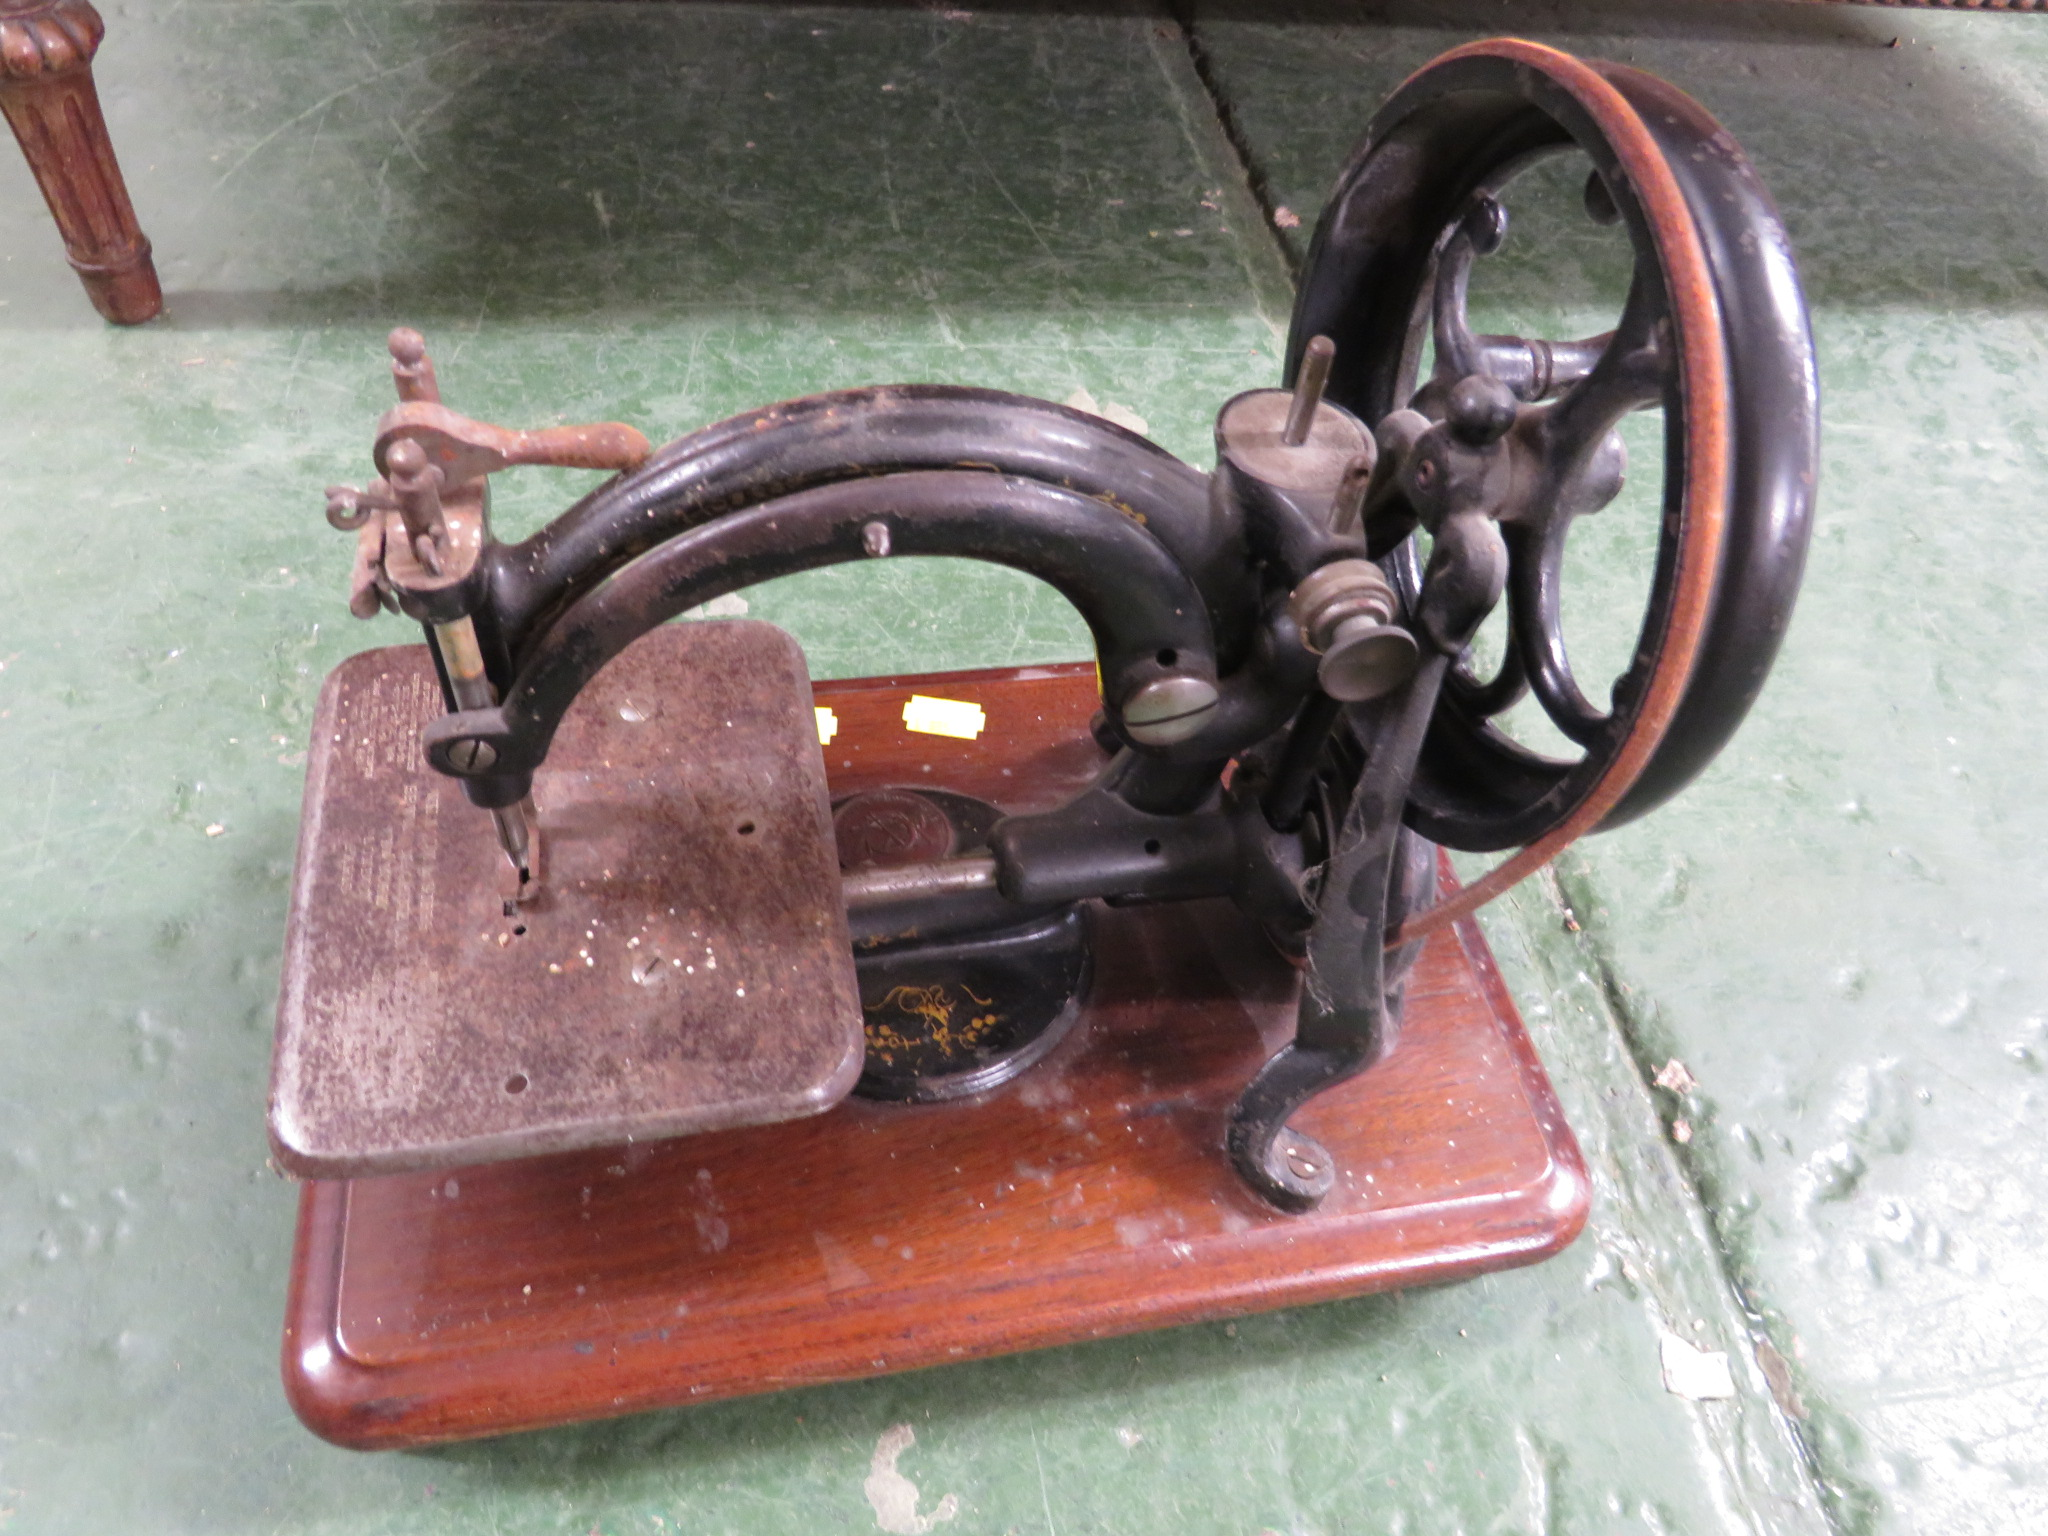 Lot 60 - WILLCOX & GIBBS MANUAL SEWING MACHINE WITH WOODEN CASE